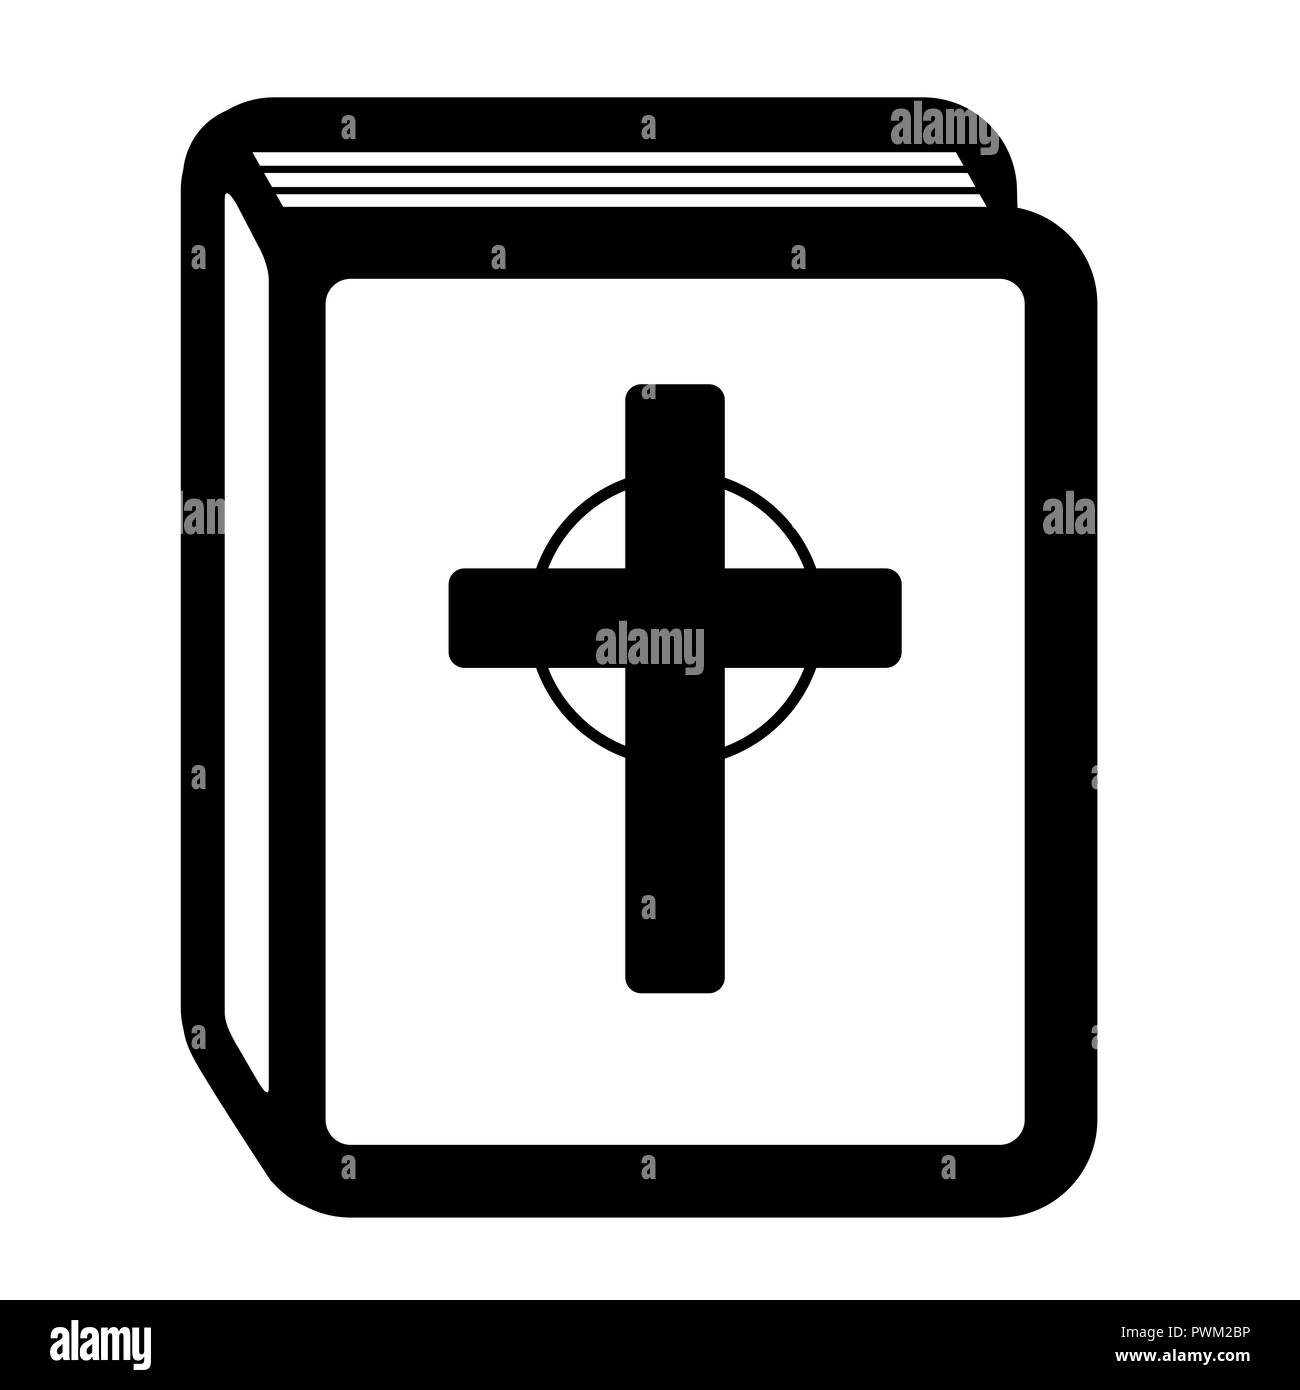 Holy Bible pictogram. Book icon with christian cross, religious symbol of Christianity. - Stock Image